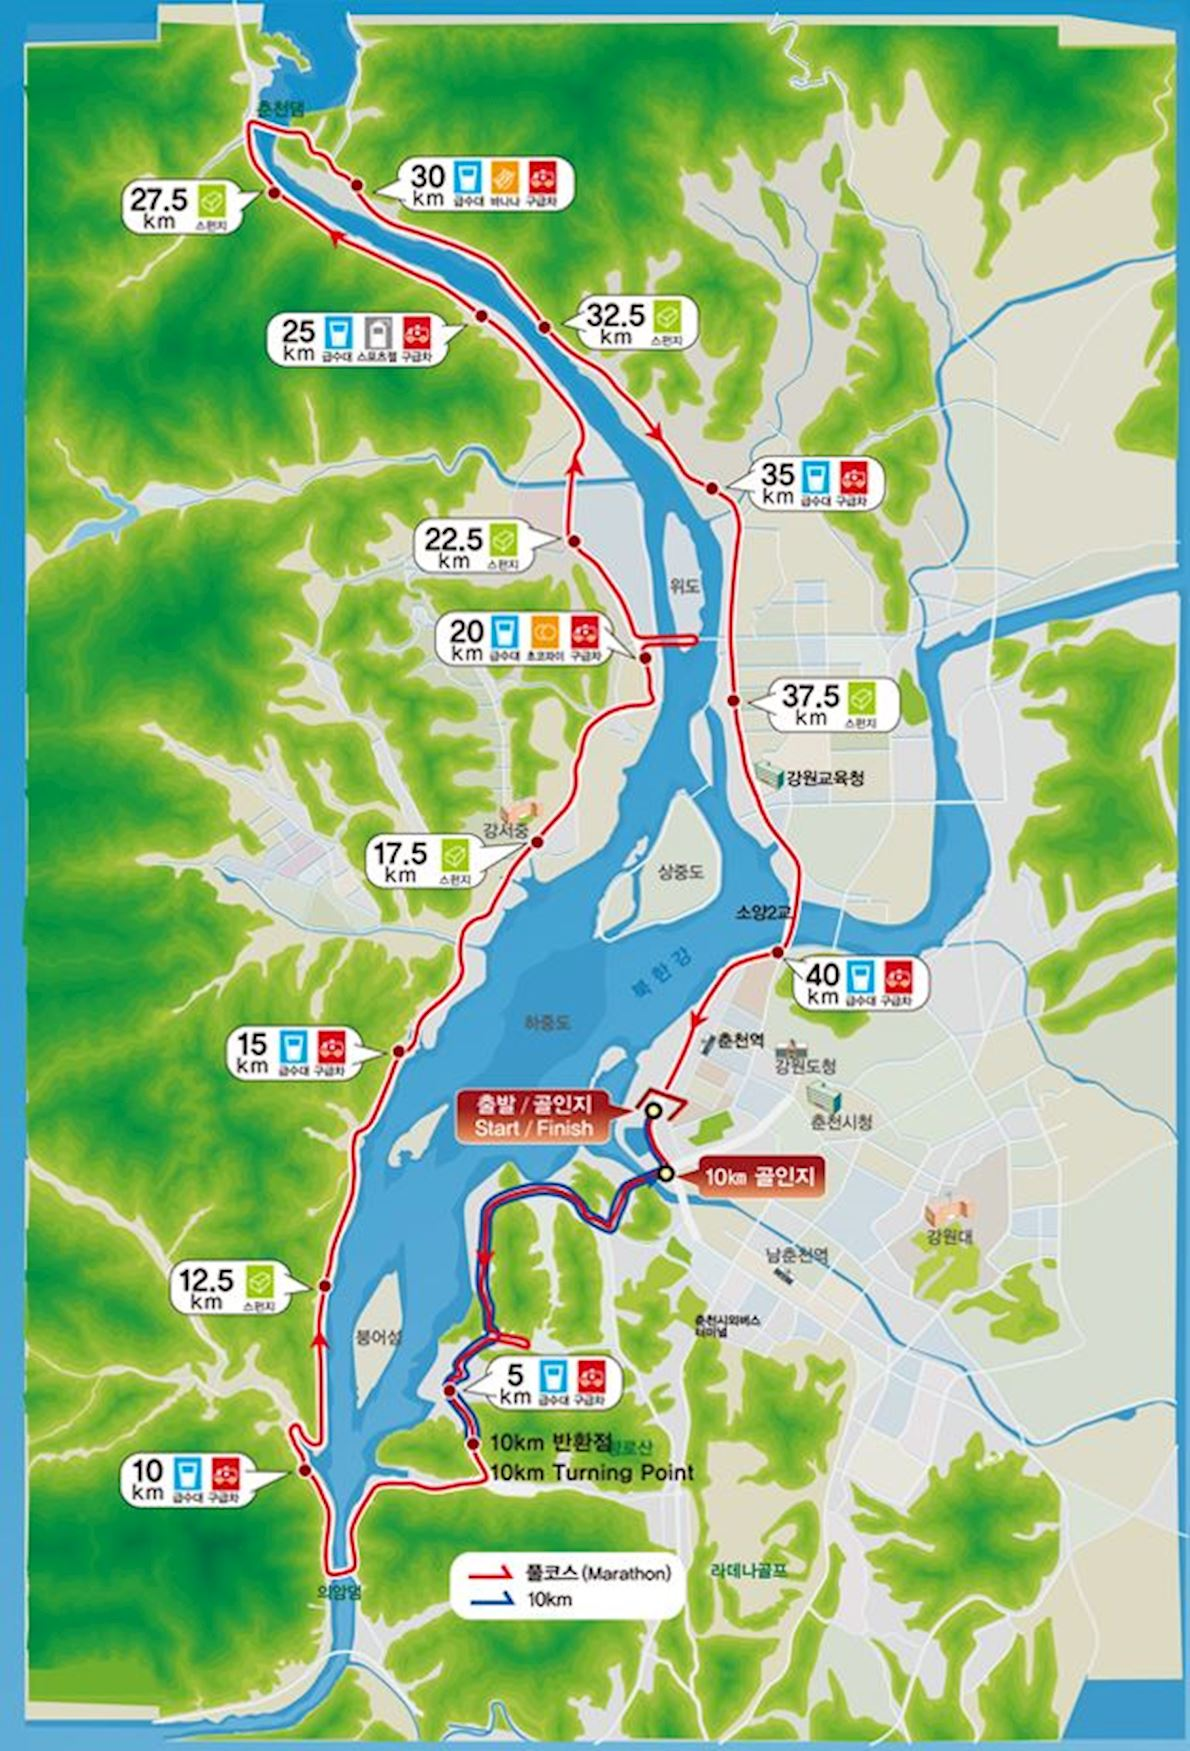 Chosunilbo Chunchon Int'l Marathon Route Map